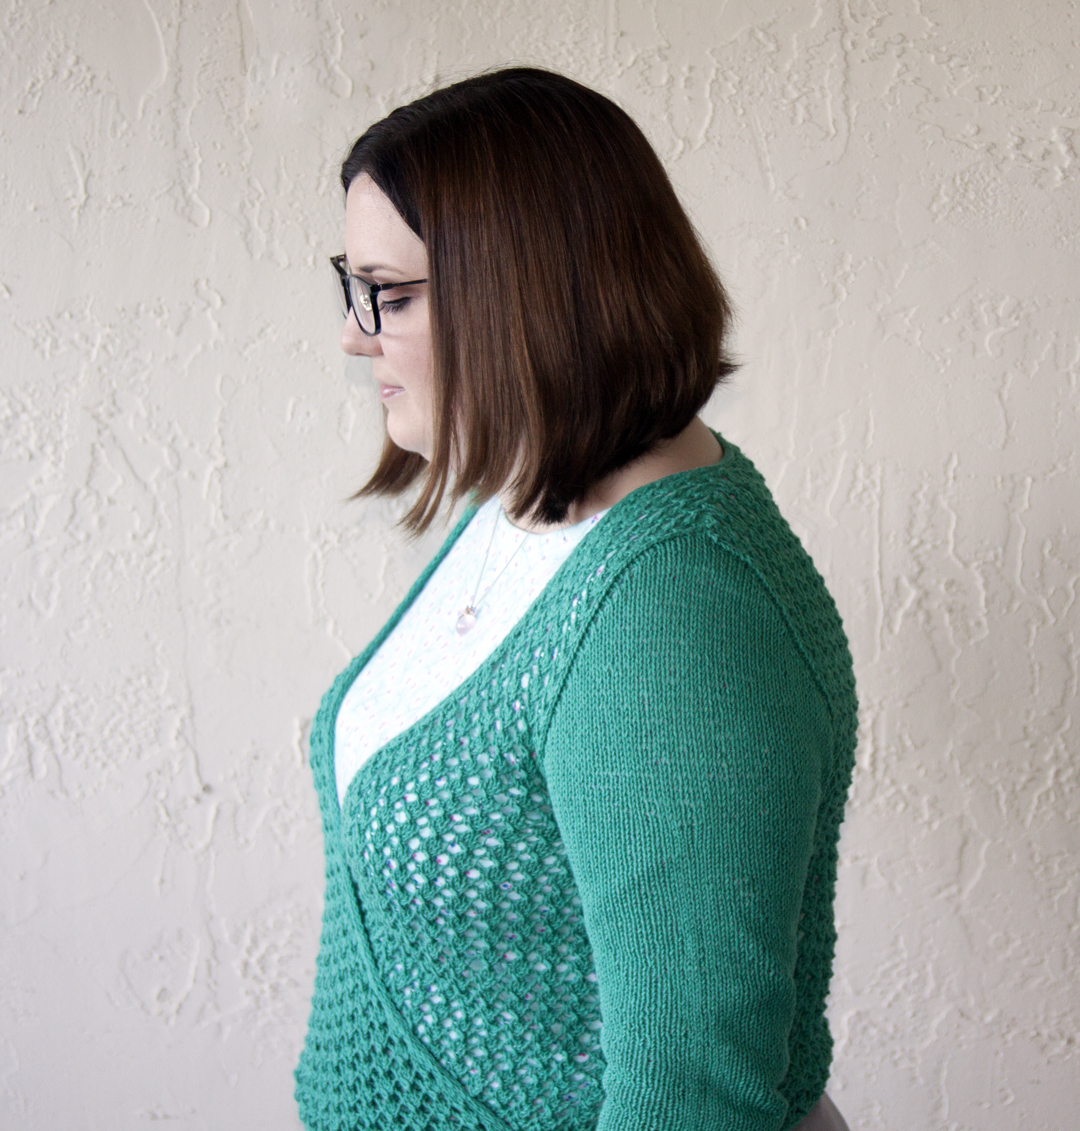 df1ec2cbce9 The sweater is made with Andi s usual top-down in the round construction  and with set in sleeves. The sleeves are plain stockinette stitch and a  nice airy